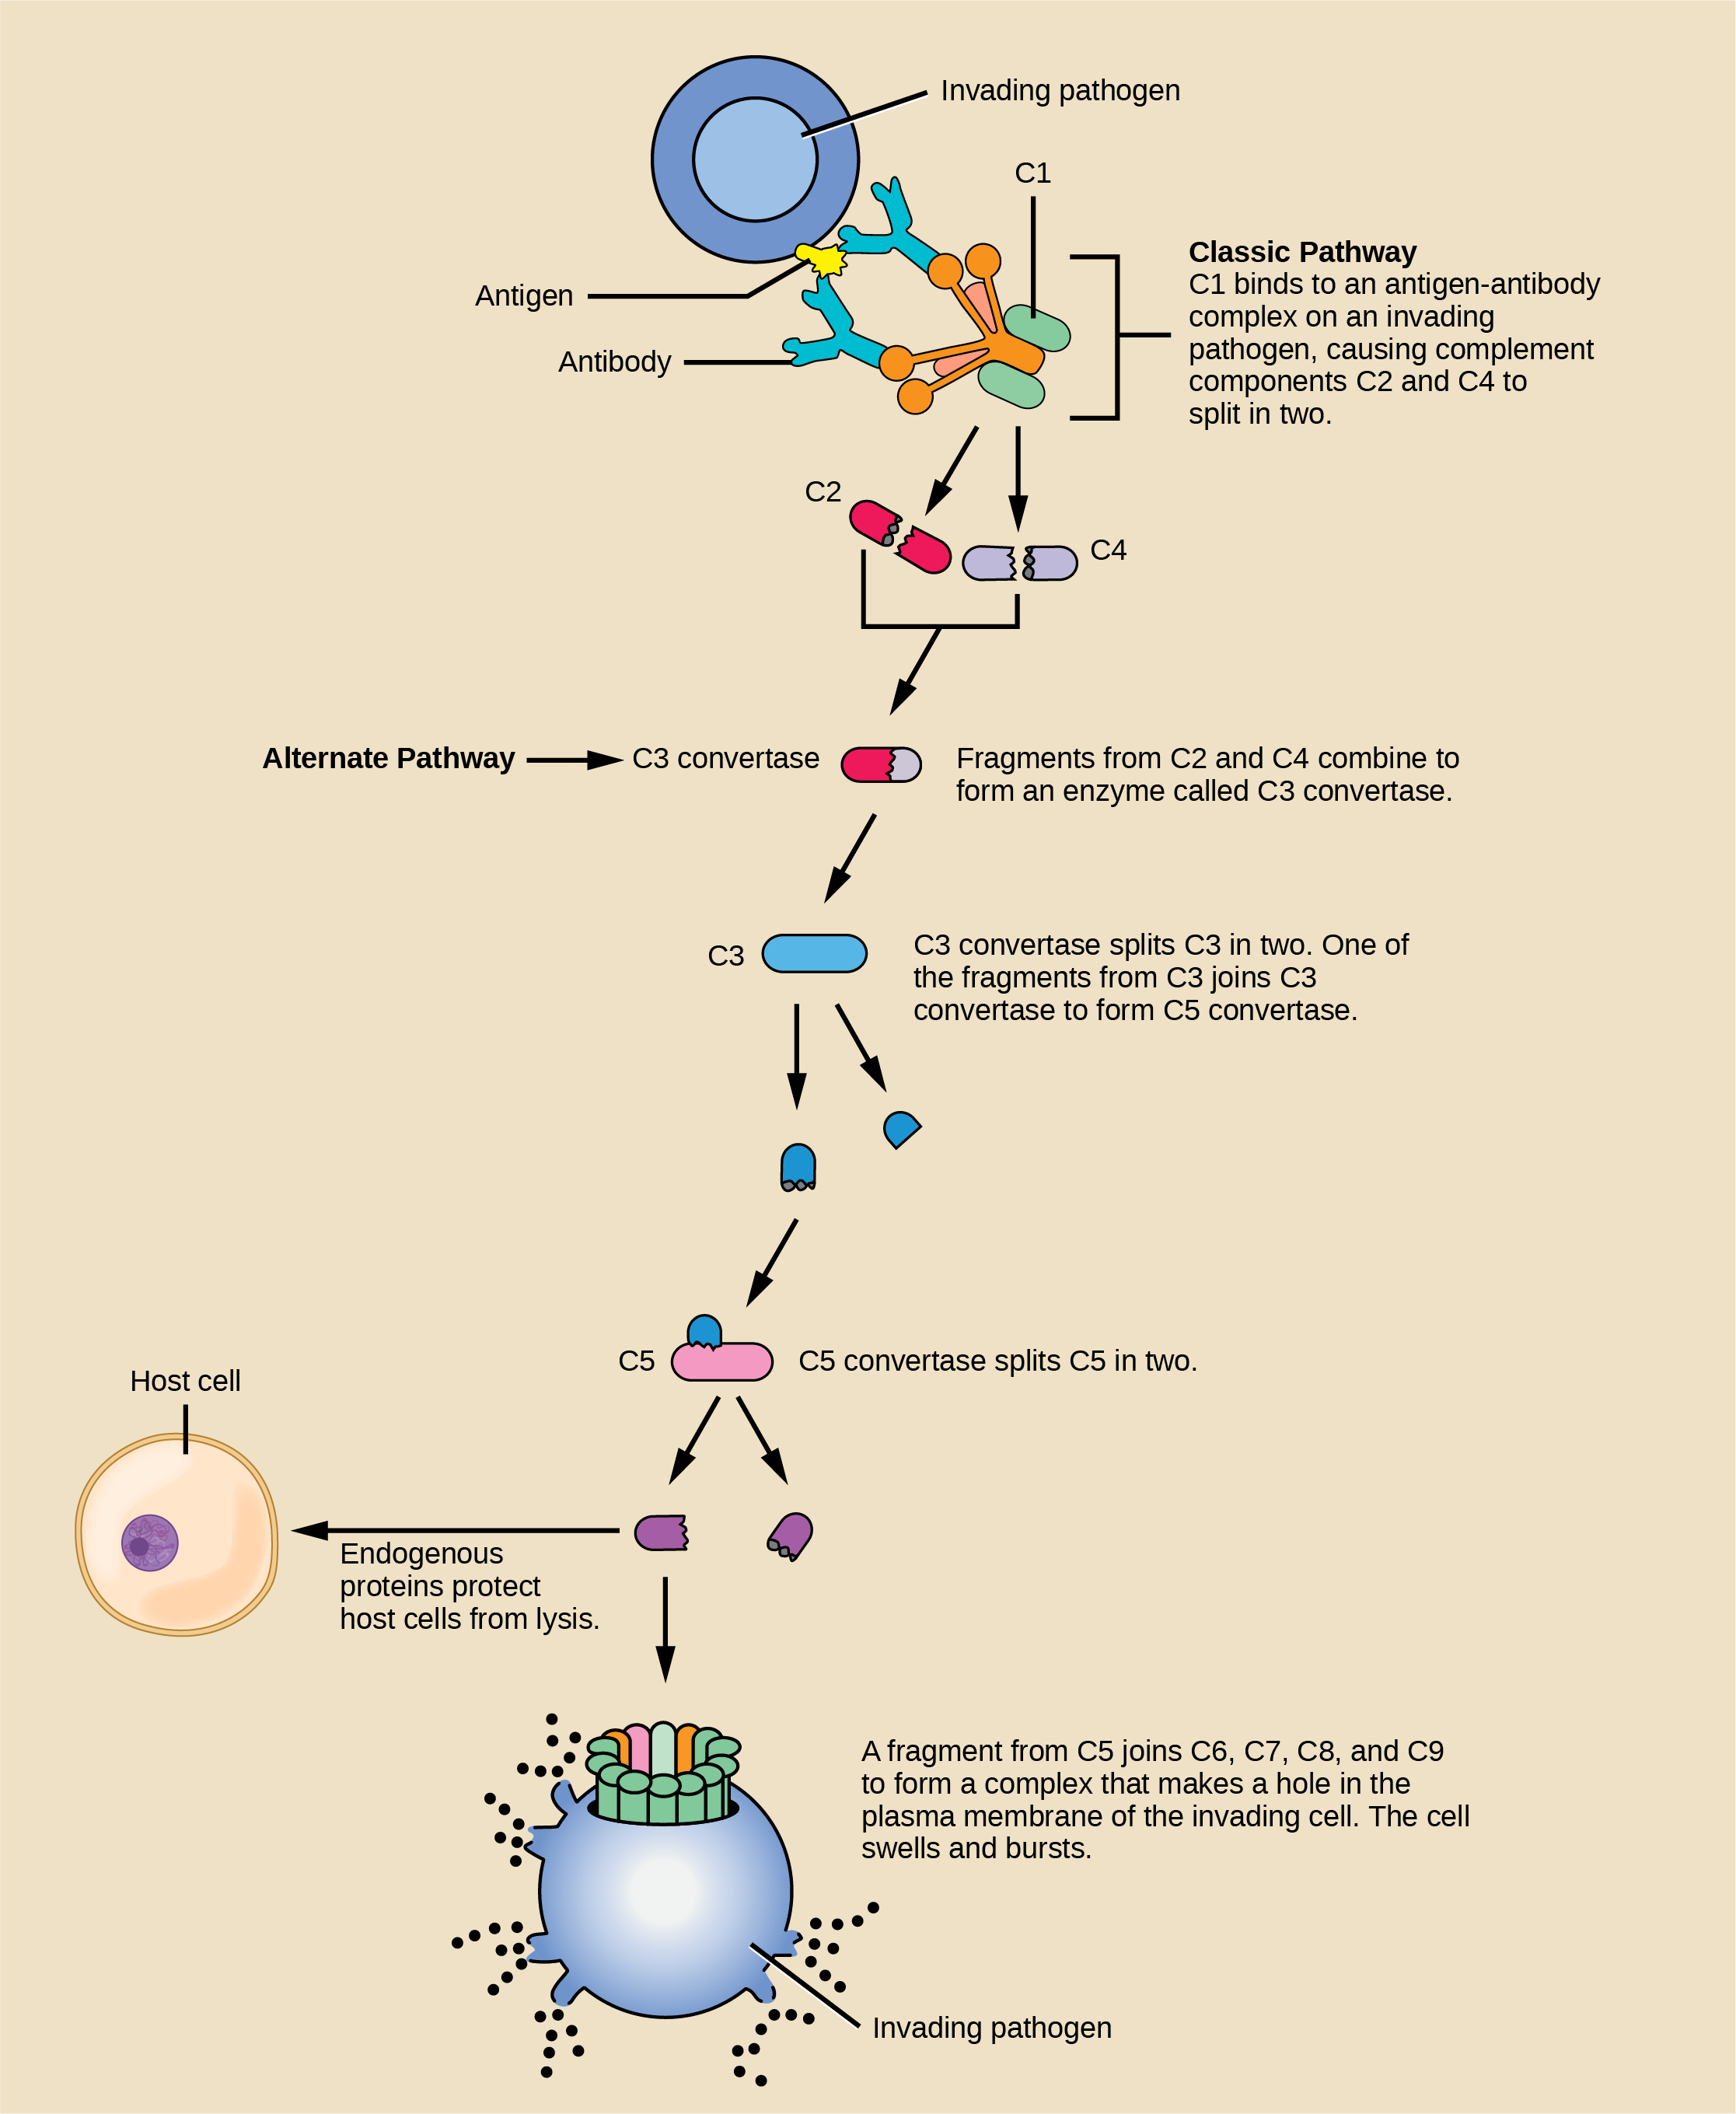 Illustration shows an invading pathogen with an antigen on its surface. In the classic pathway for complement activation, host antibodies bind the antigen, and C 1 binds the antibody. The C 1-antibody complex causes C 2 and C 4 each to split in two. Fragments from C 2 and C 4 each joins together to form an enzyme called C 3 convertase. C 3convertase splits C 3 in two. One of the fragments from C 3 joins C 3 convertase to form C 5 convertase. C 5 convertase splits C 5 in two. A fragment from C 5 joins C 6, C 7, C 8, and C 9 to form a complex that makes a hole in the plasma membrane for the invading cell. The cell swells and bursts. In the alternative pathway, C 3 convertase spontaneously splits C 3 in two and the rest of the pathway proceeds the same as the classic pathway. Host cells are protected from complement by the presence of endogenous proteins.